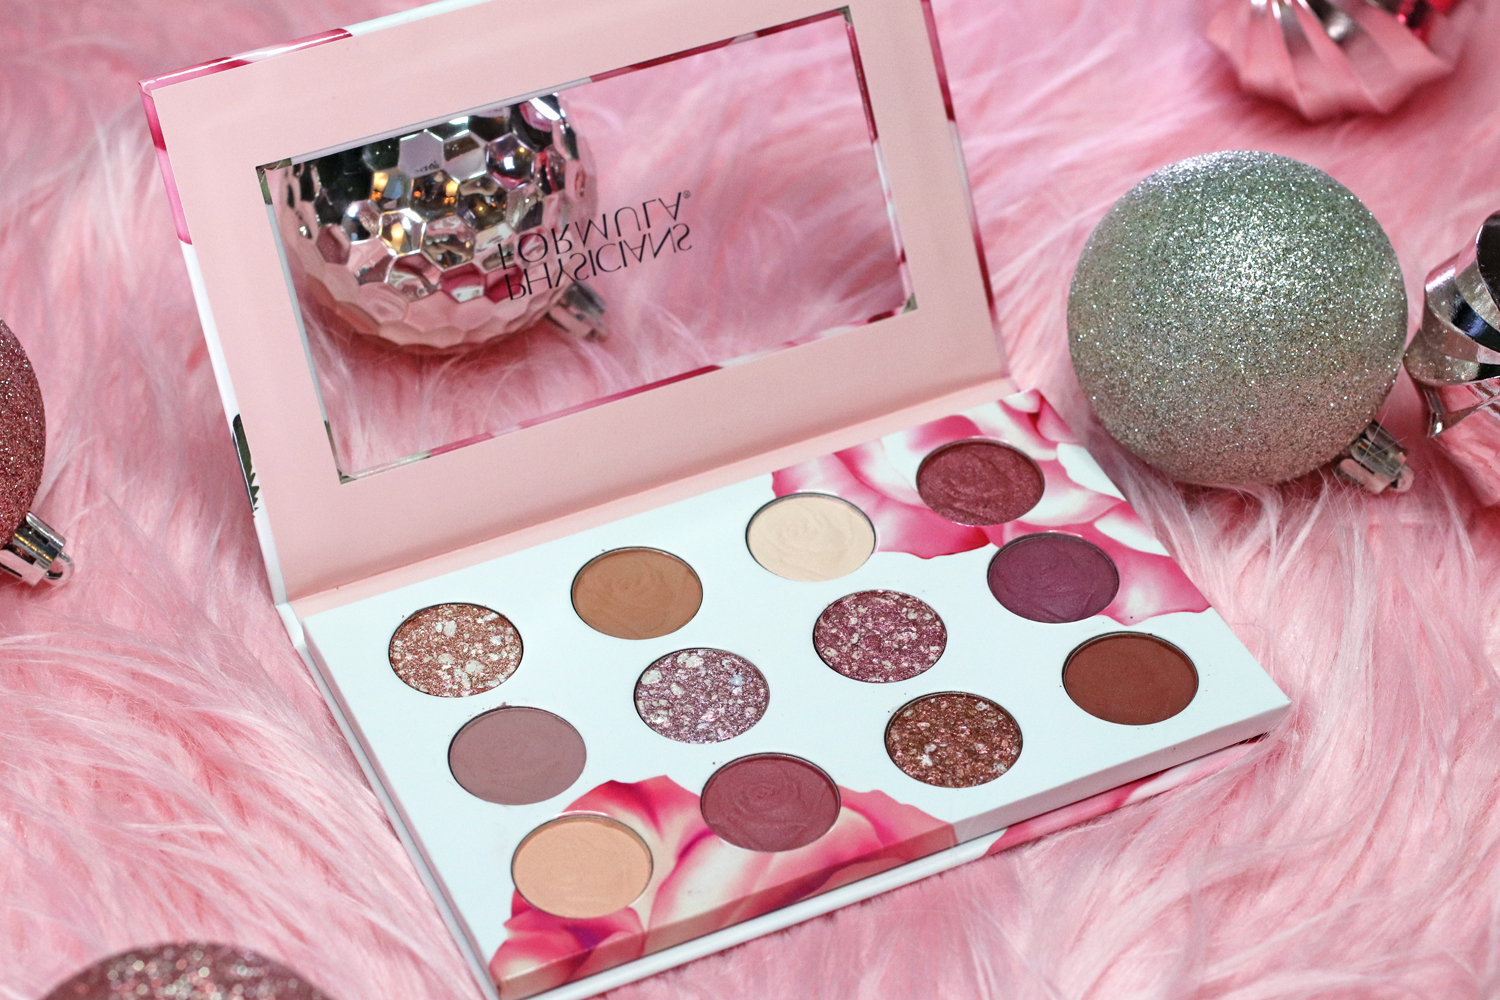 Physicians Formula Rose All Play Palette gift idea 2020